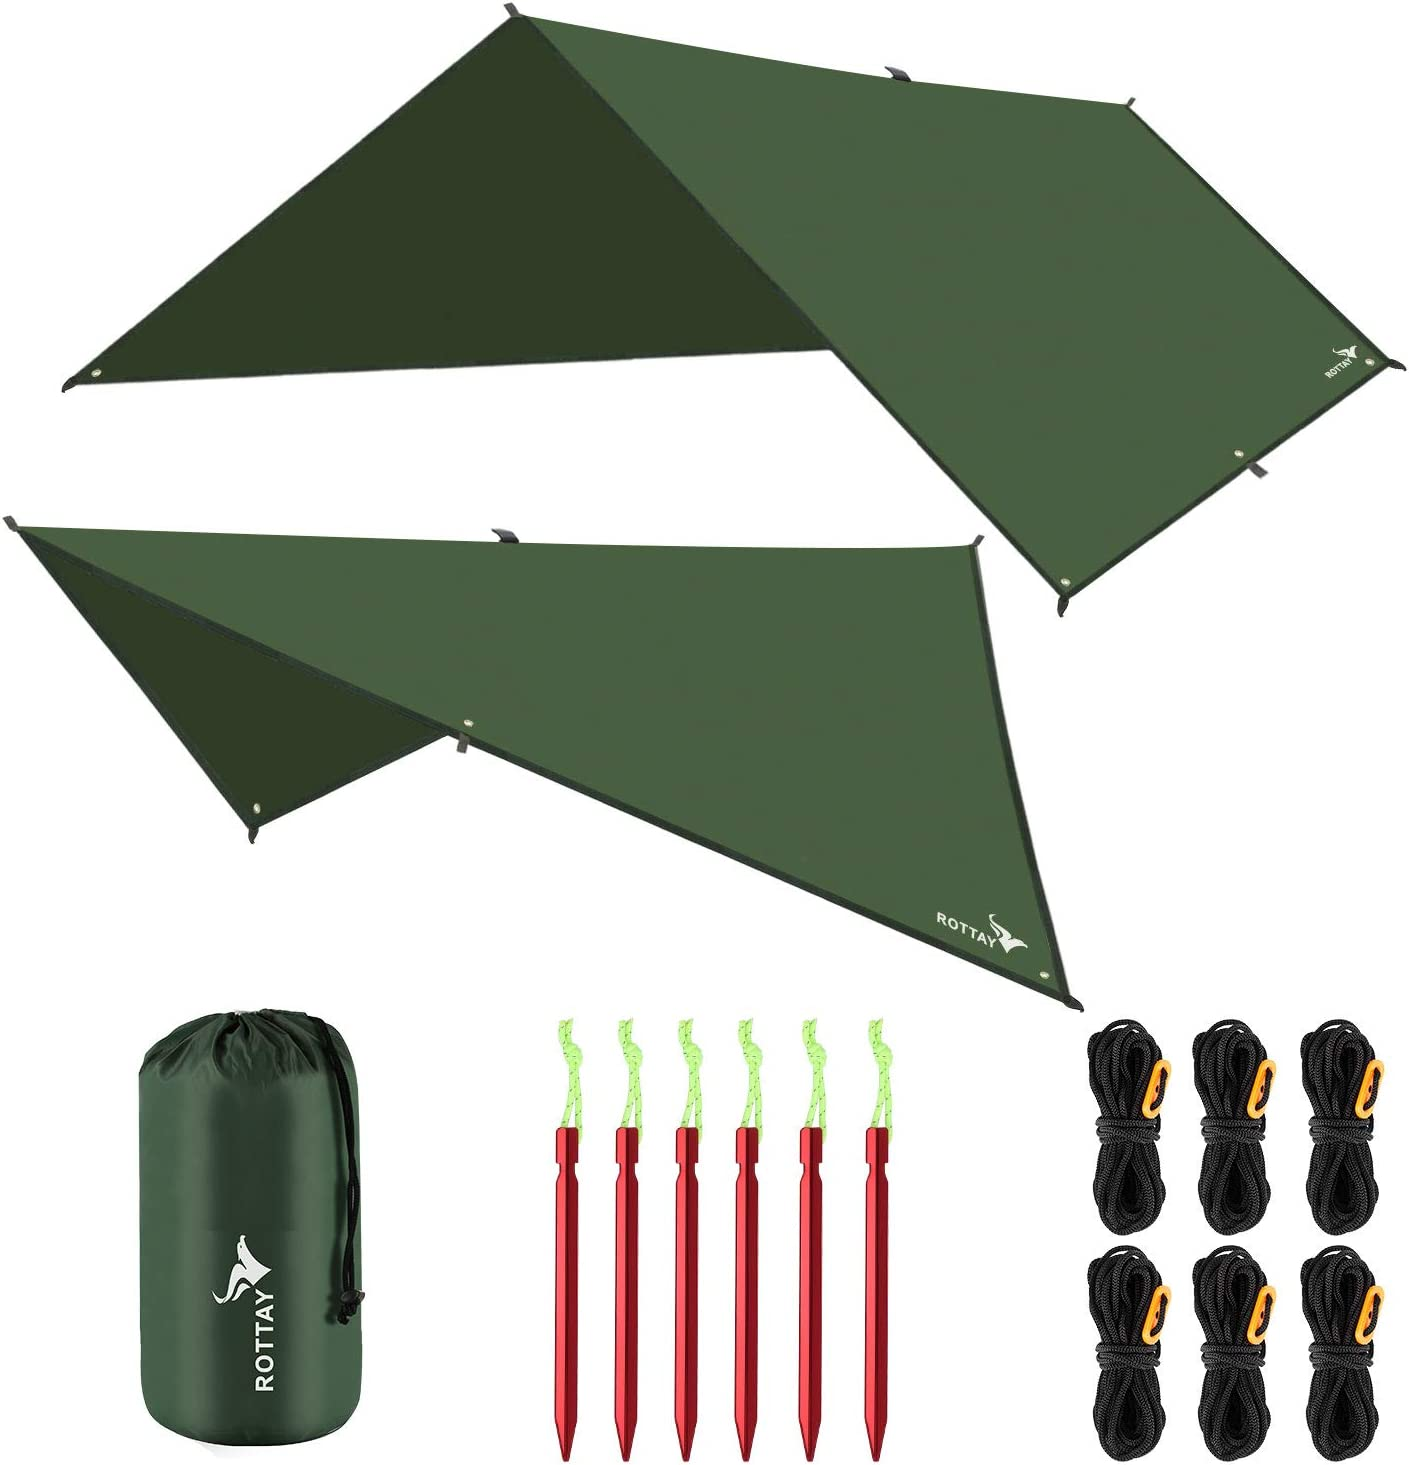 Hiking Multiple Colors and Size Survival Gear Sunshade Multifunctional Tent Footprint for Camping Lightweight and Backpacking Approved Rottay Waterproof Camping Tarp